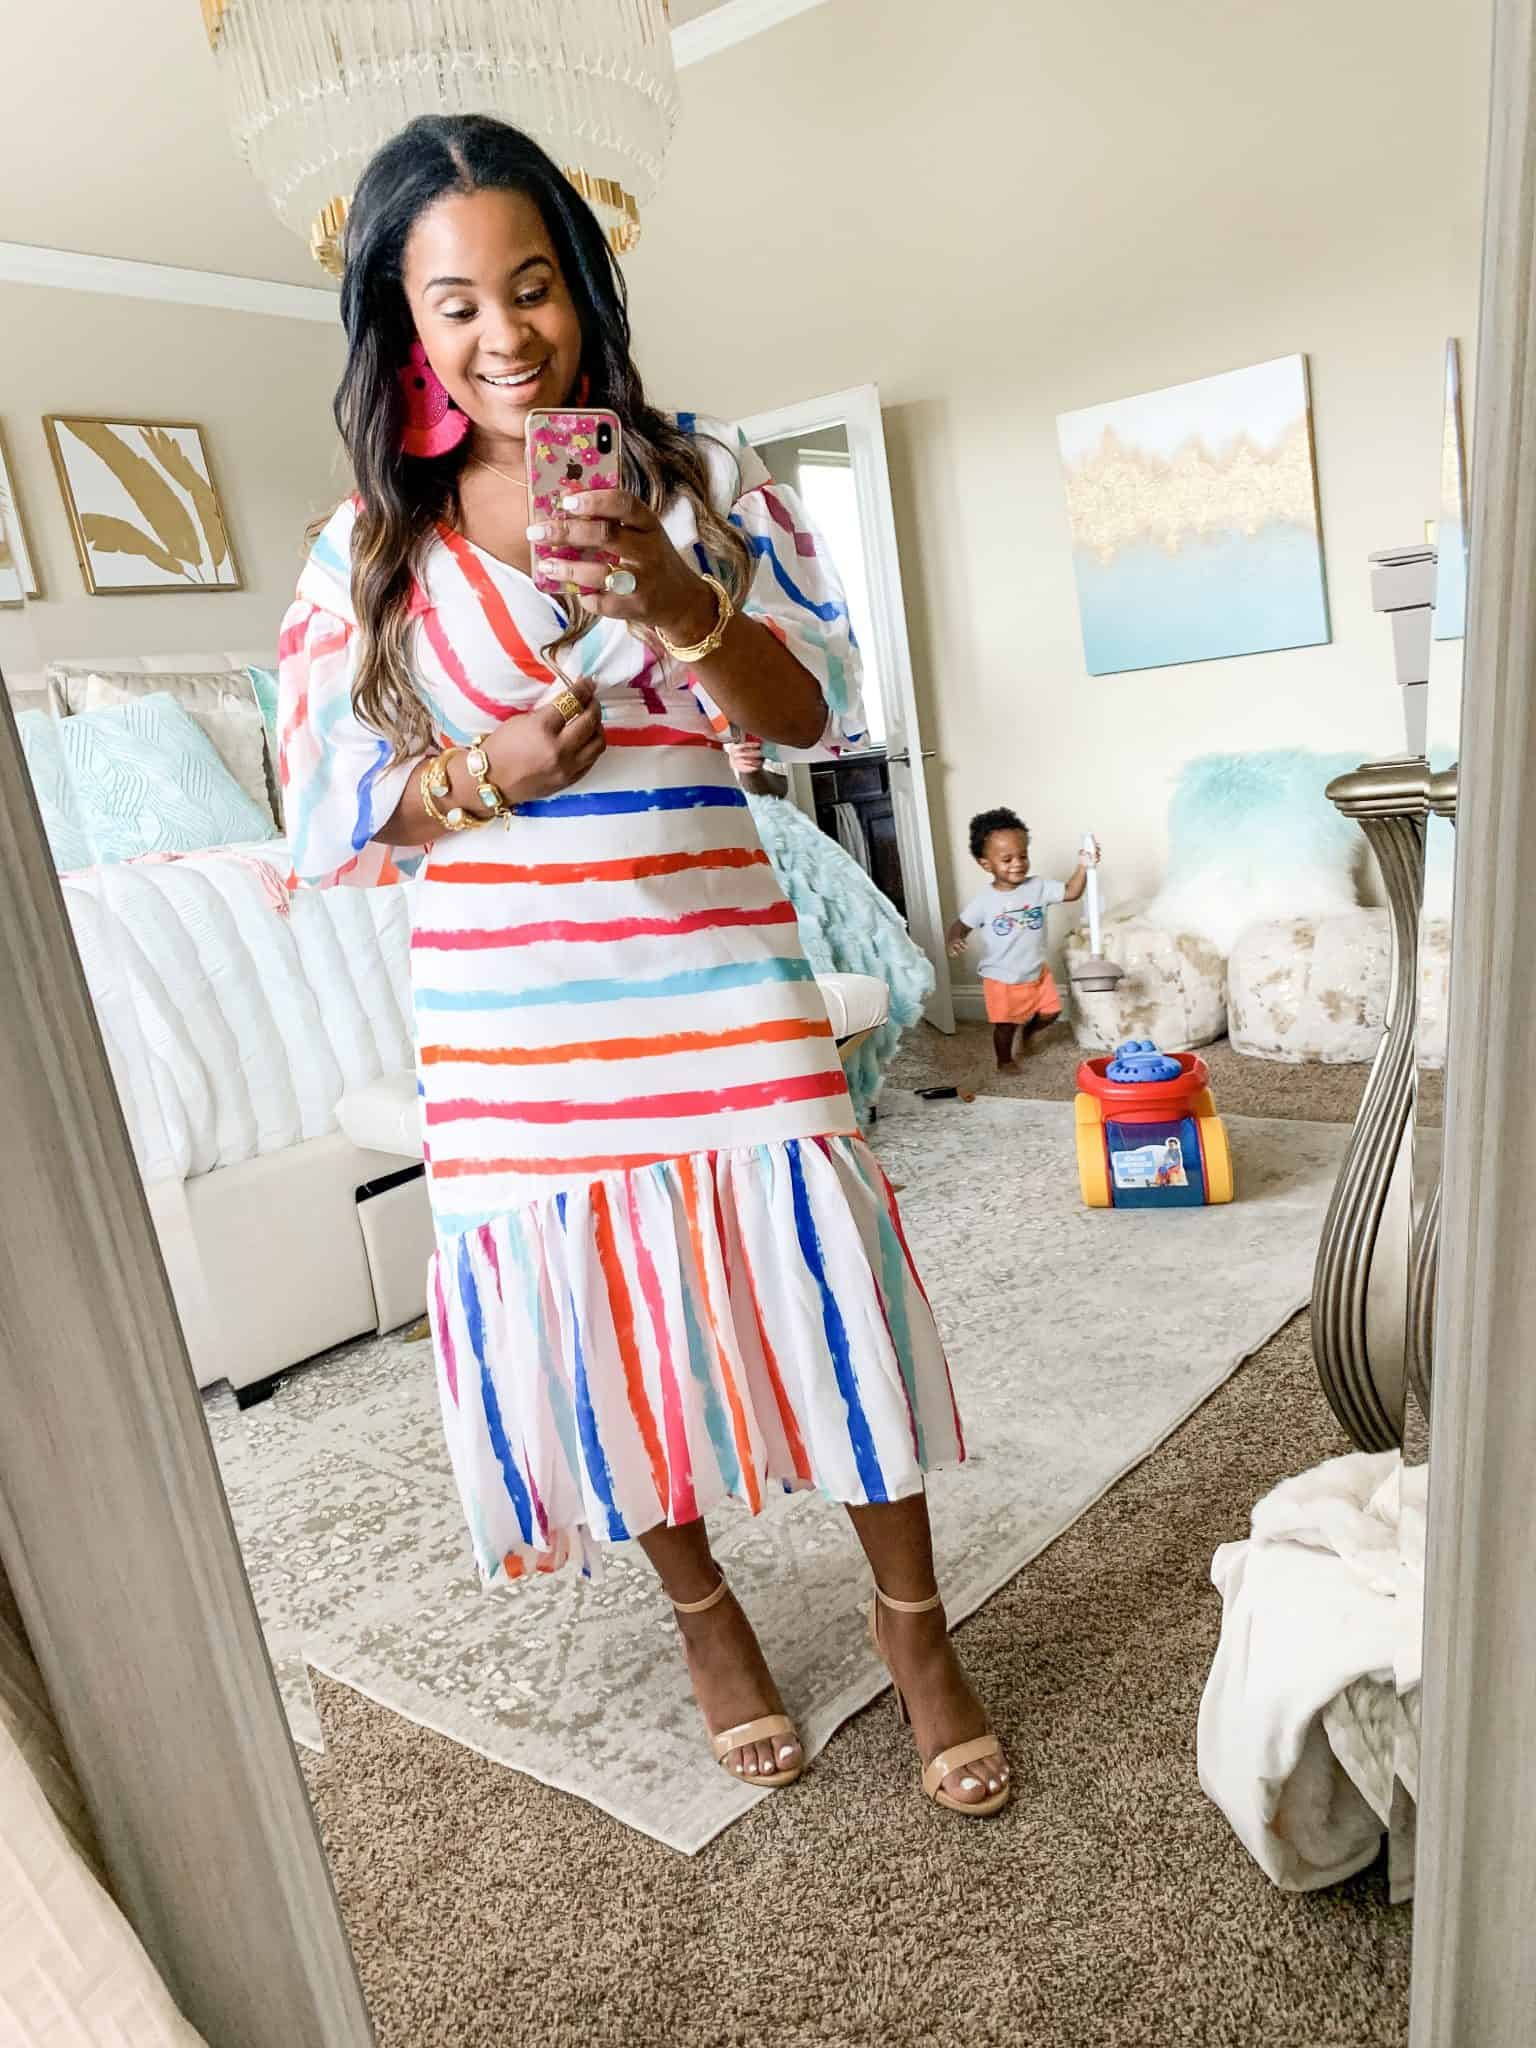 Red Dress Boutique summer favorites featured by top US fashion blog, Glamorous Versatility: image of a woman wearing a rainbow striped maxi dress